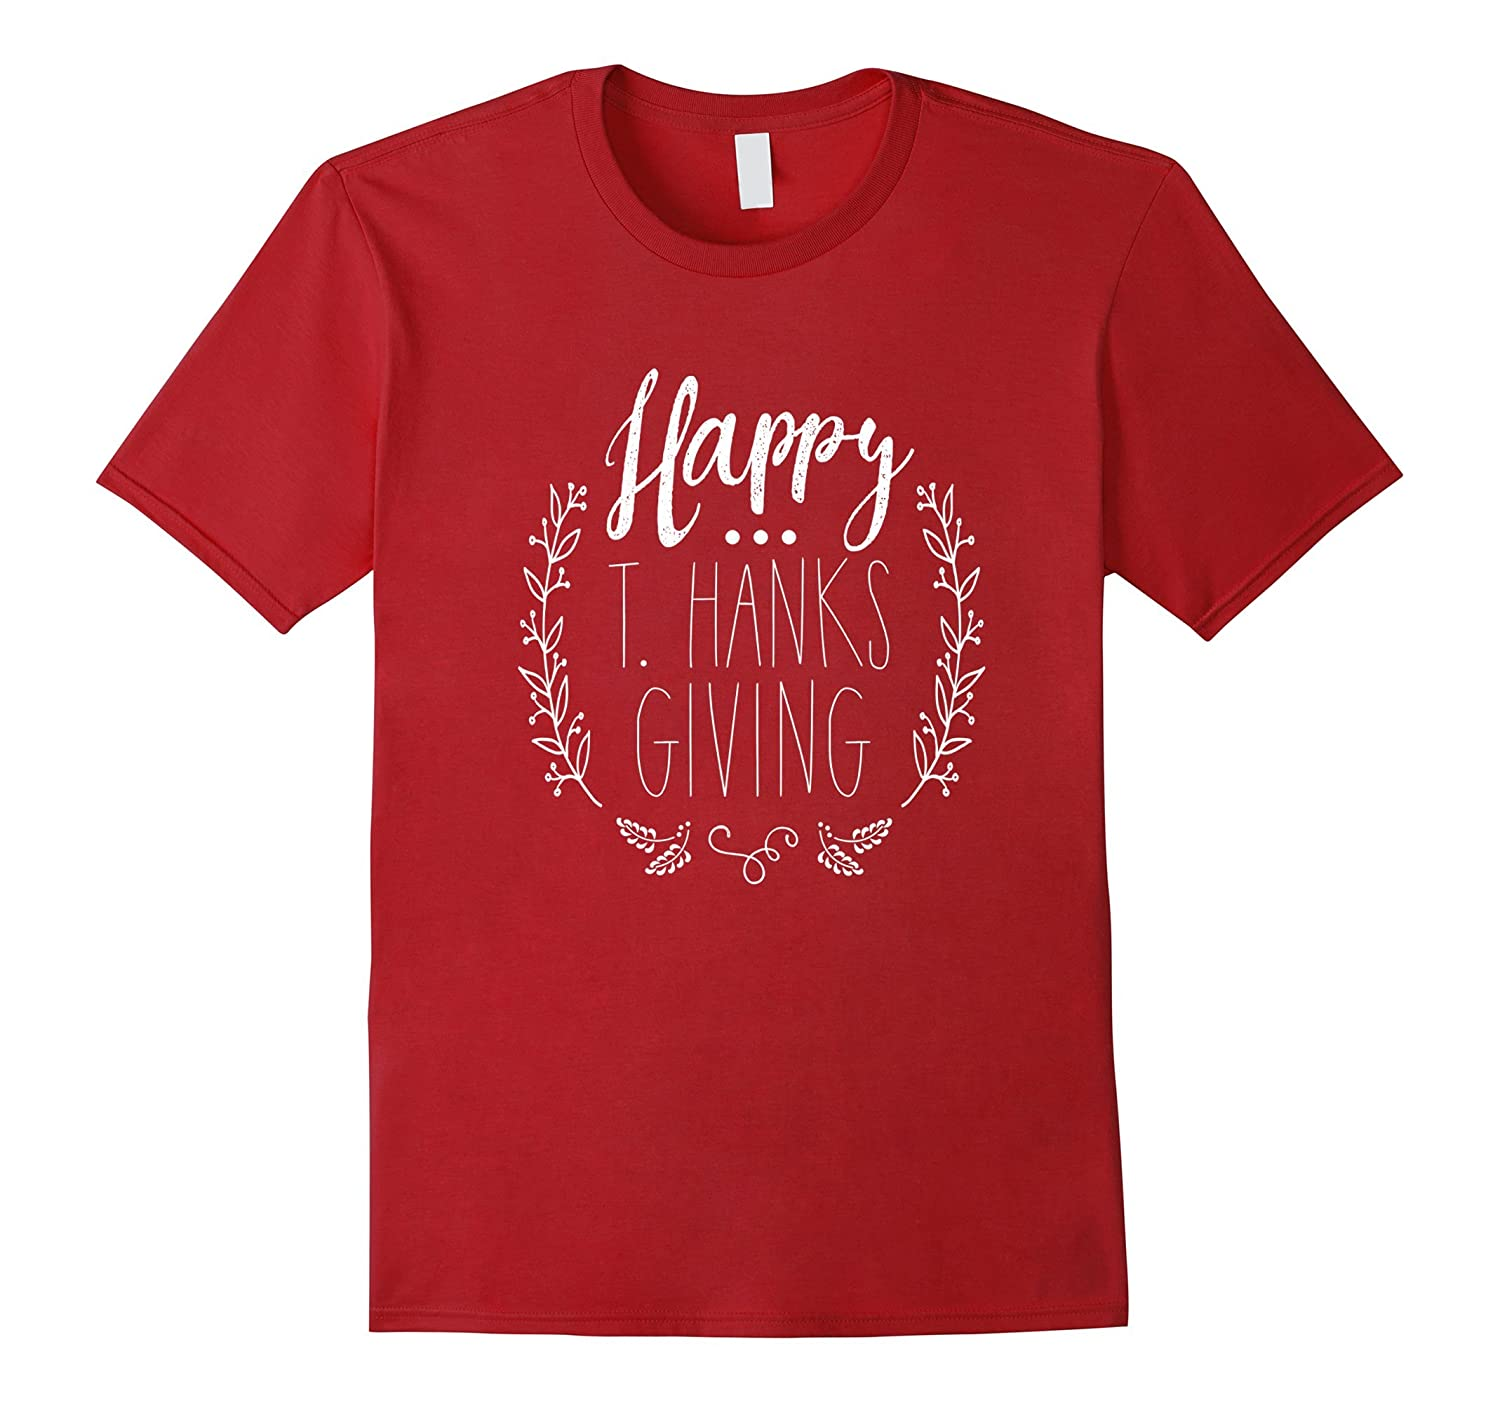 Happy T. Hanks Giving Shirt with wreath-ANZ